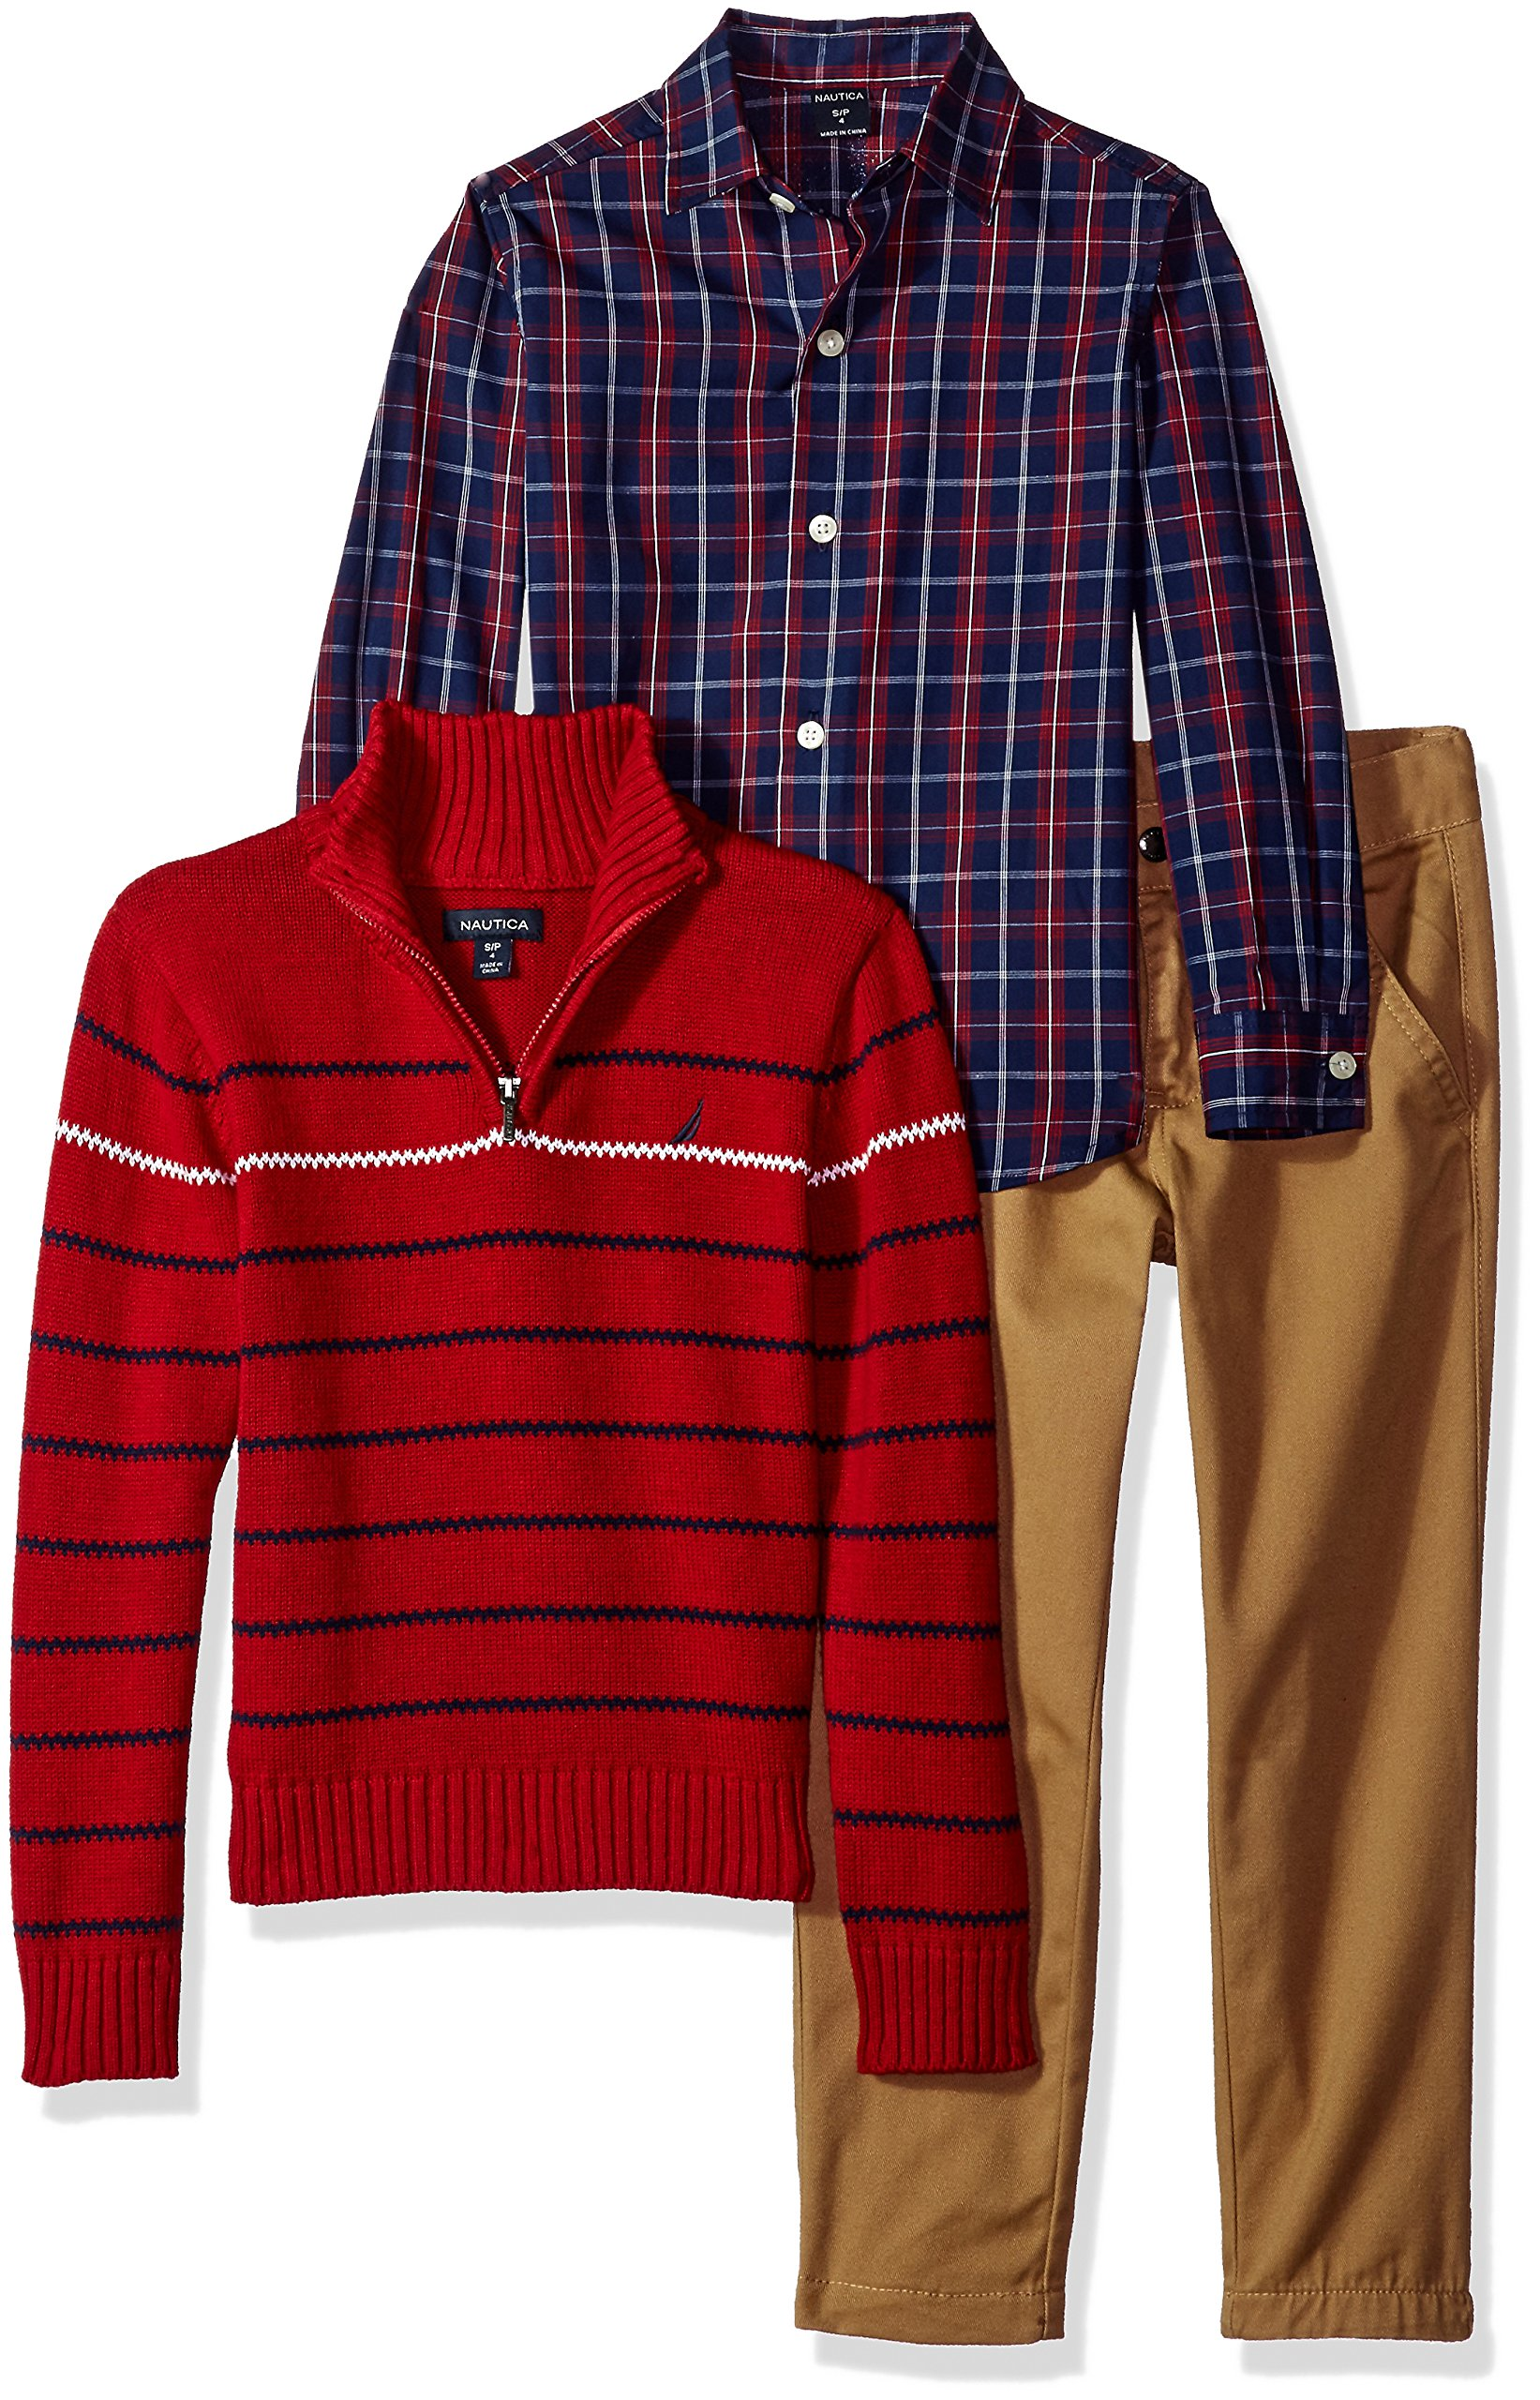 Nautica Boys' Three Piece Set with Zip Sweater, Woven Shirt, and Twill Pant, Red Rouge, 2T